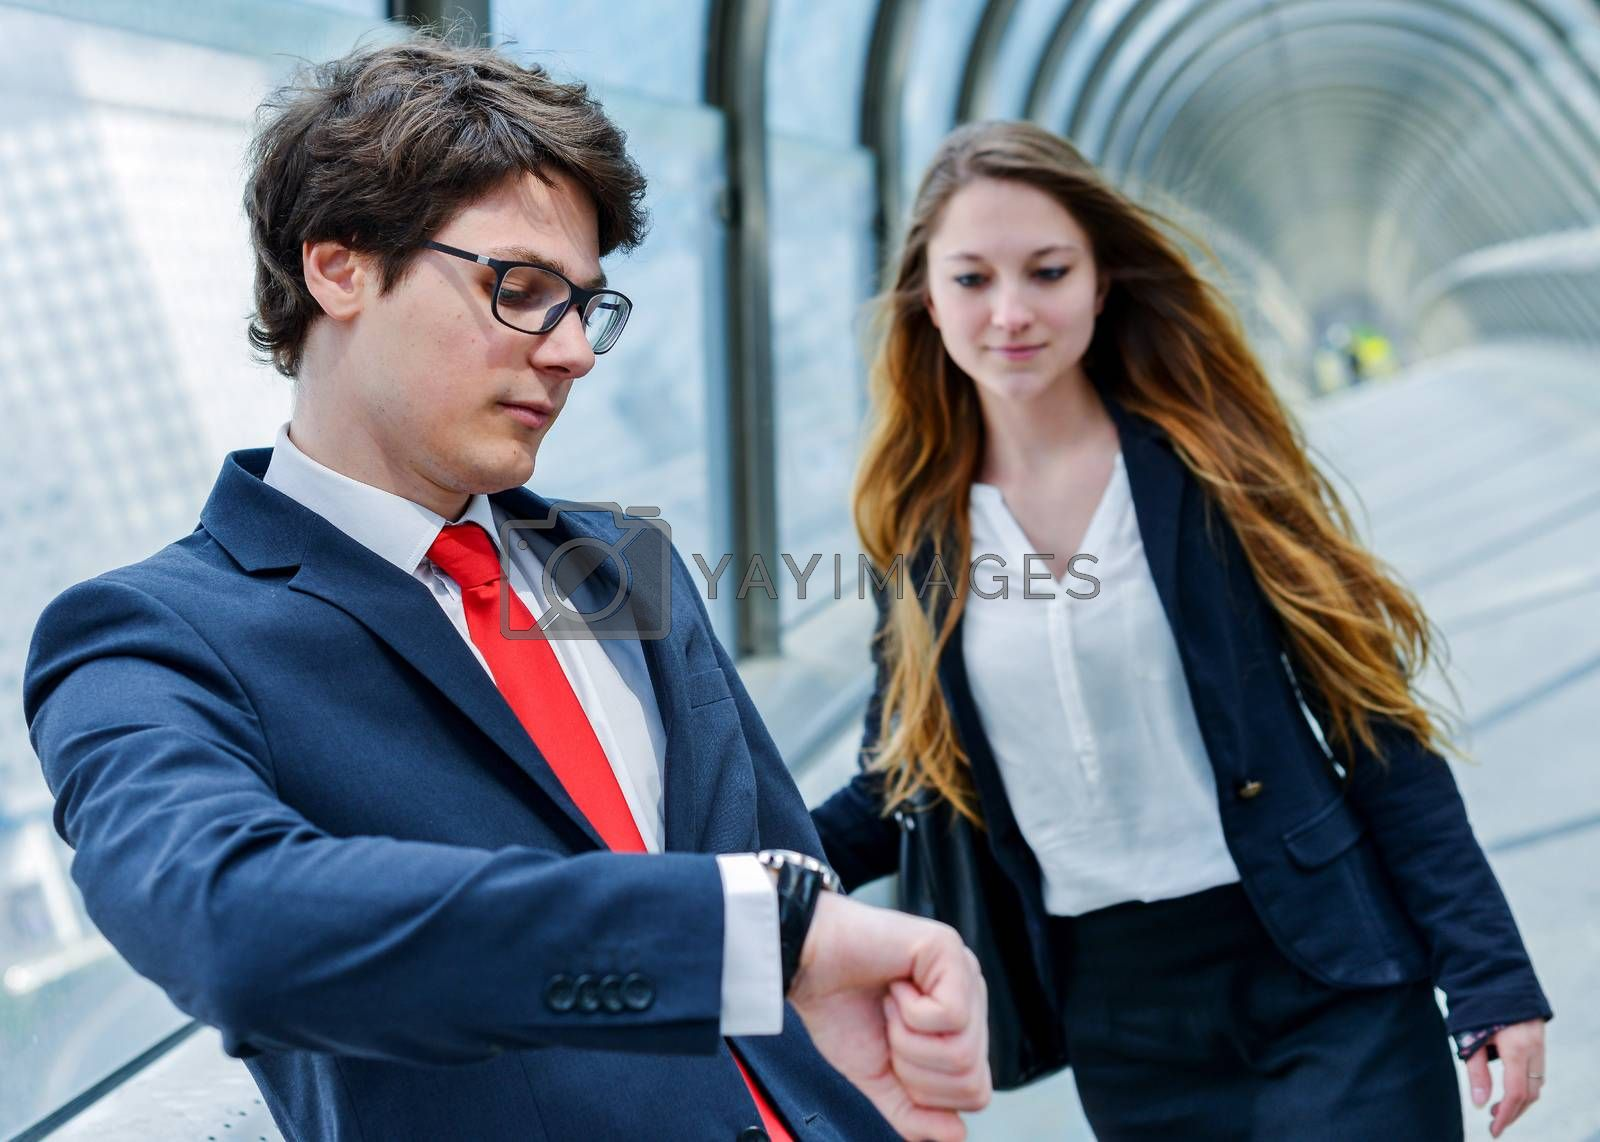 Royalty free image of Junior executives of company are late for a business meeting by pixinoo